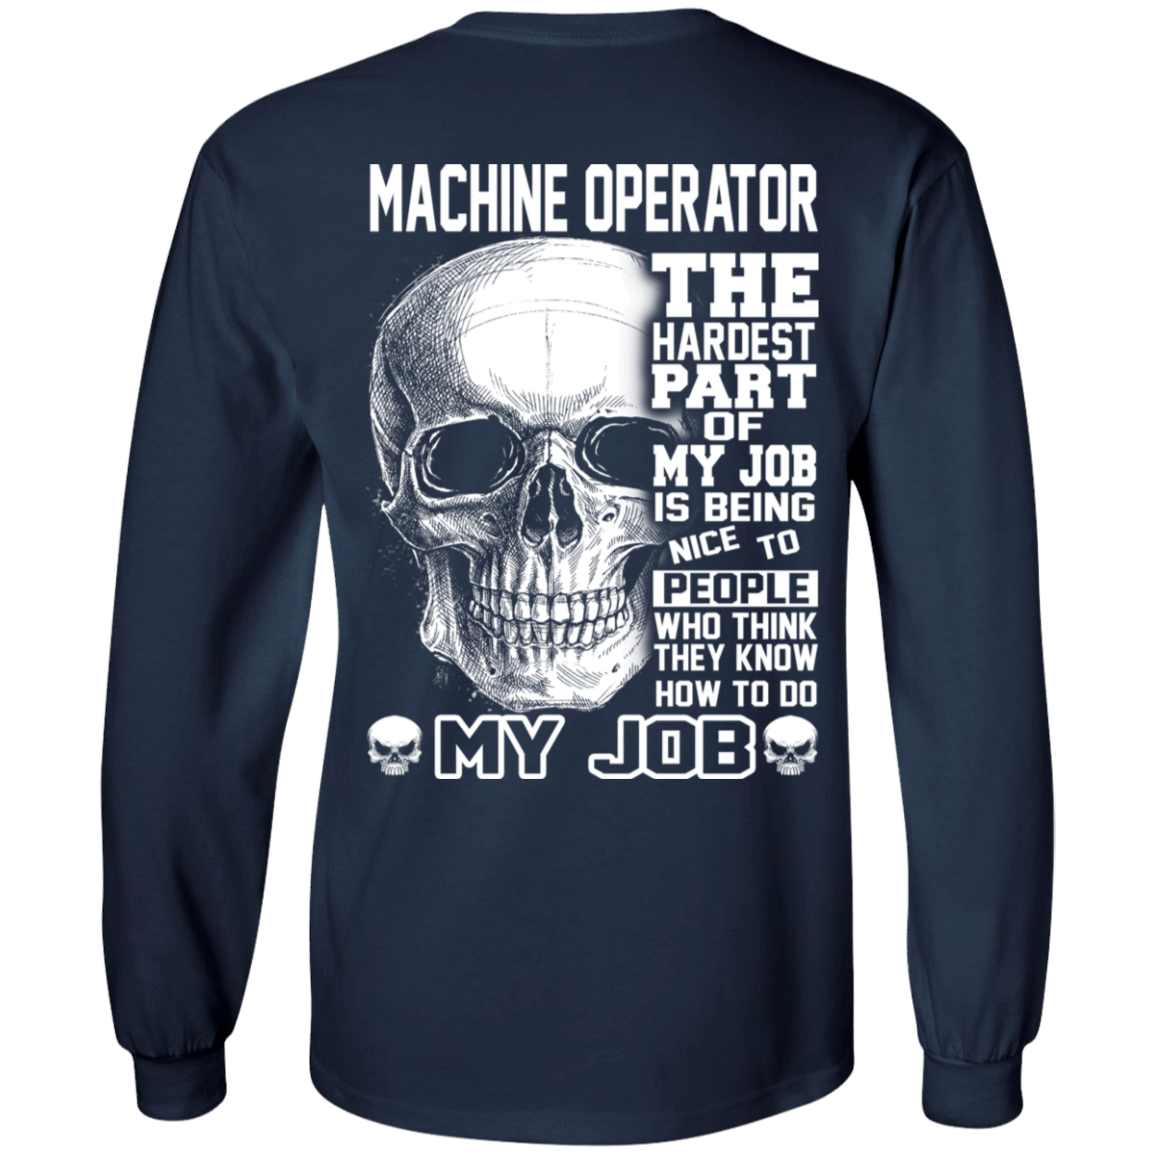 Machine Operator The Hardest Part Of My Job 30-184-71609224-331 - Tee Ript